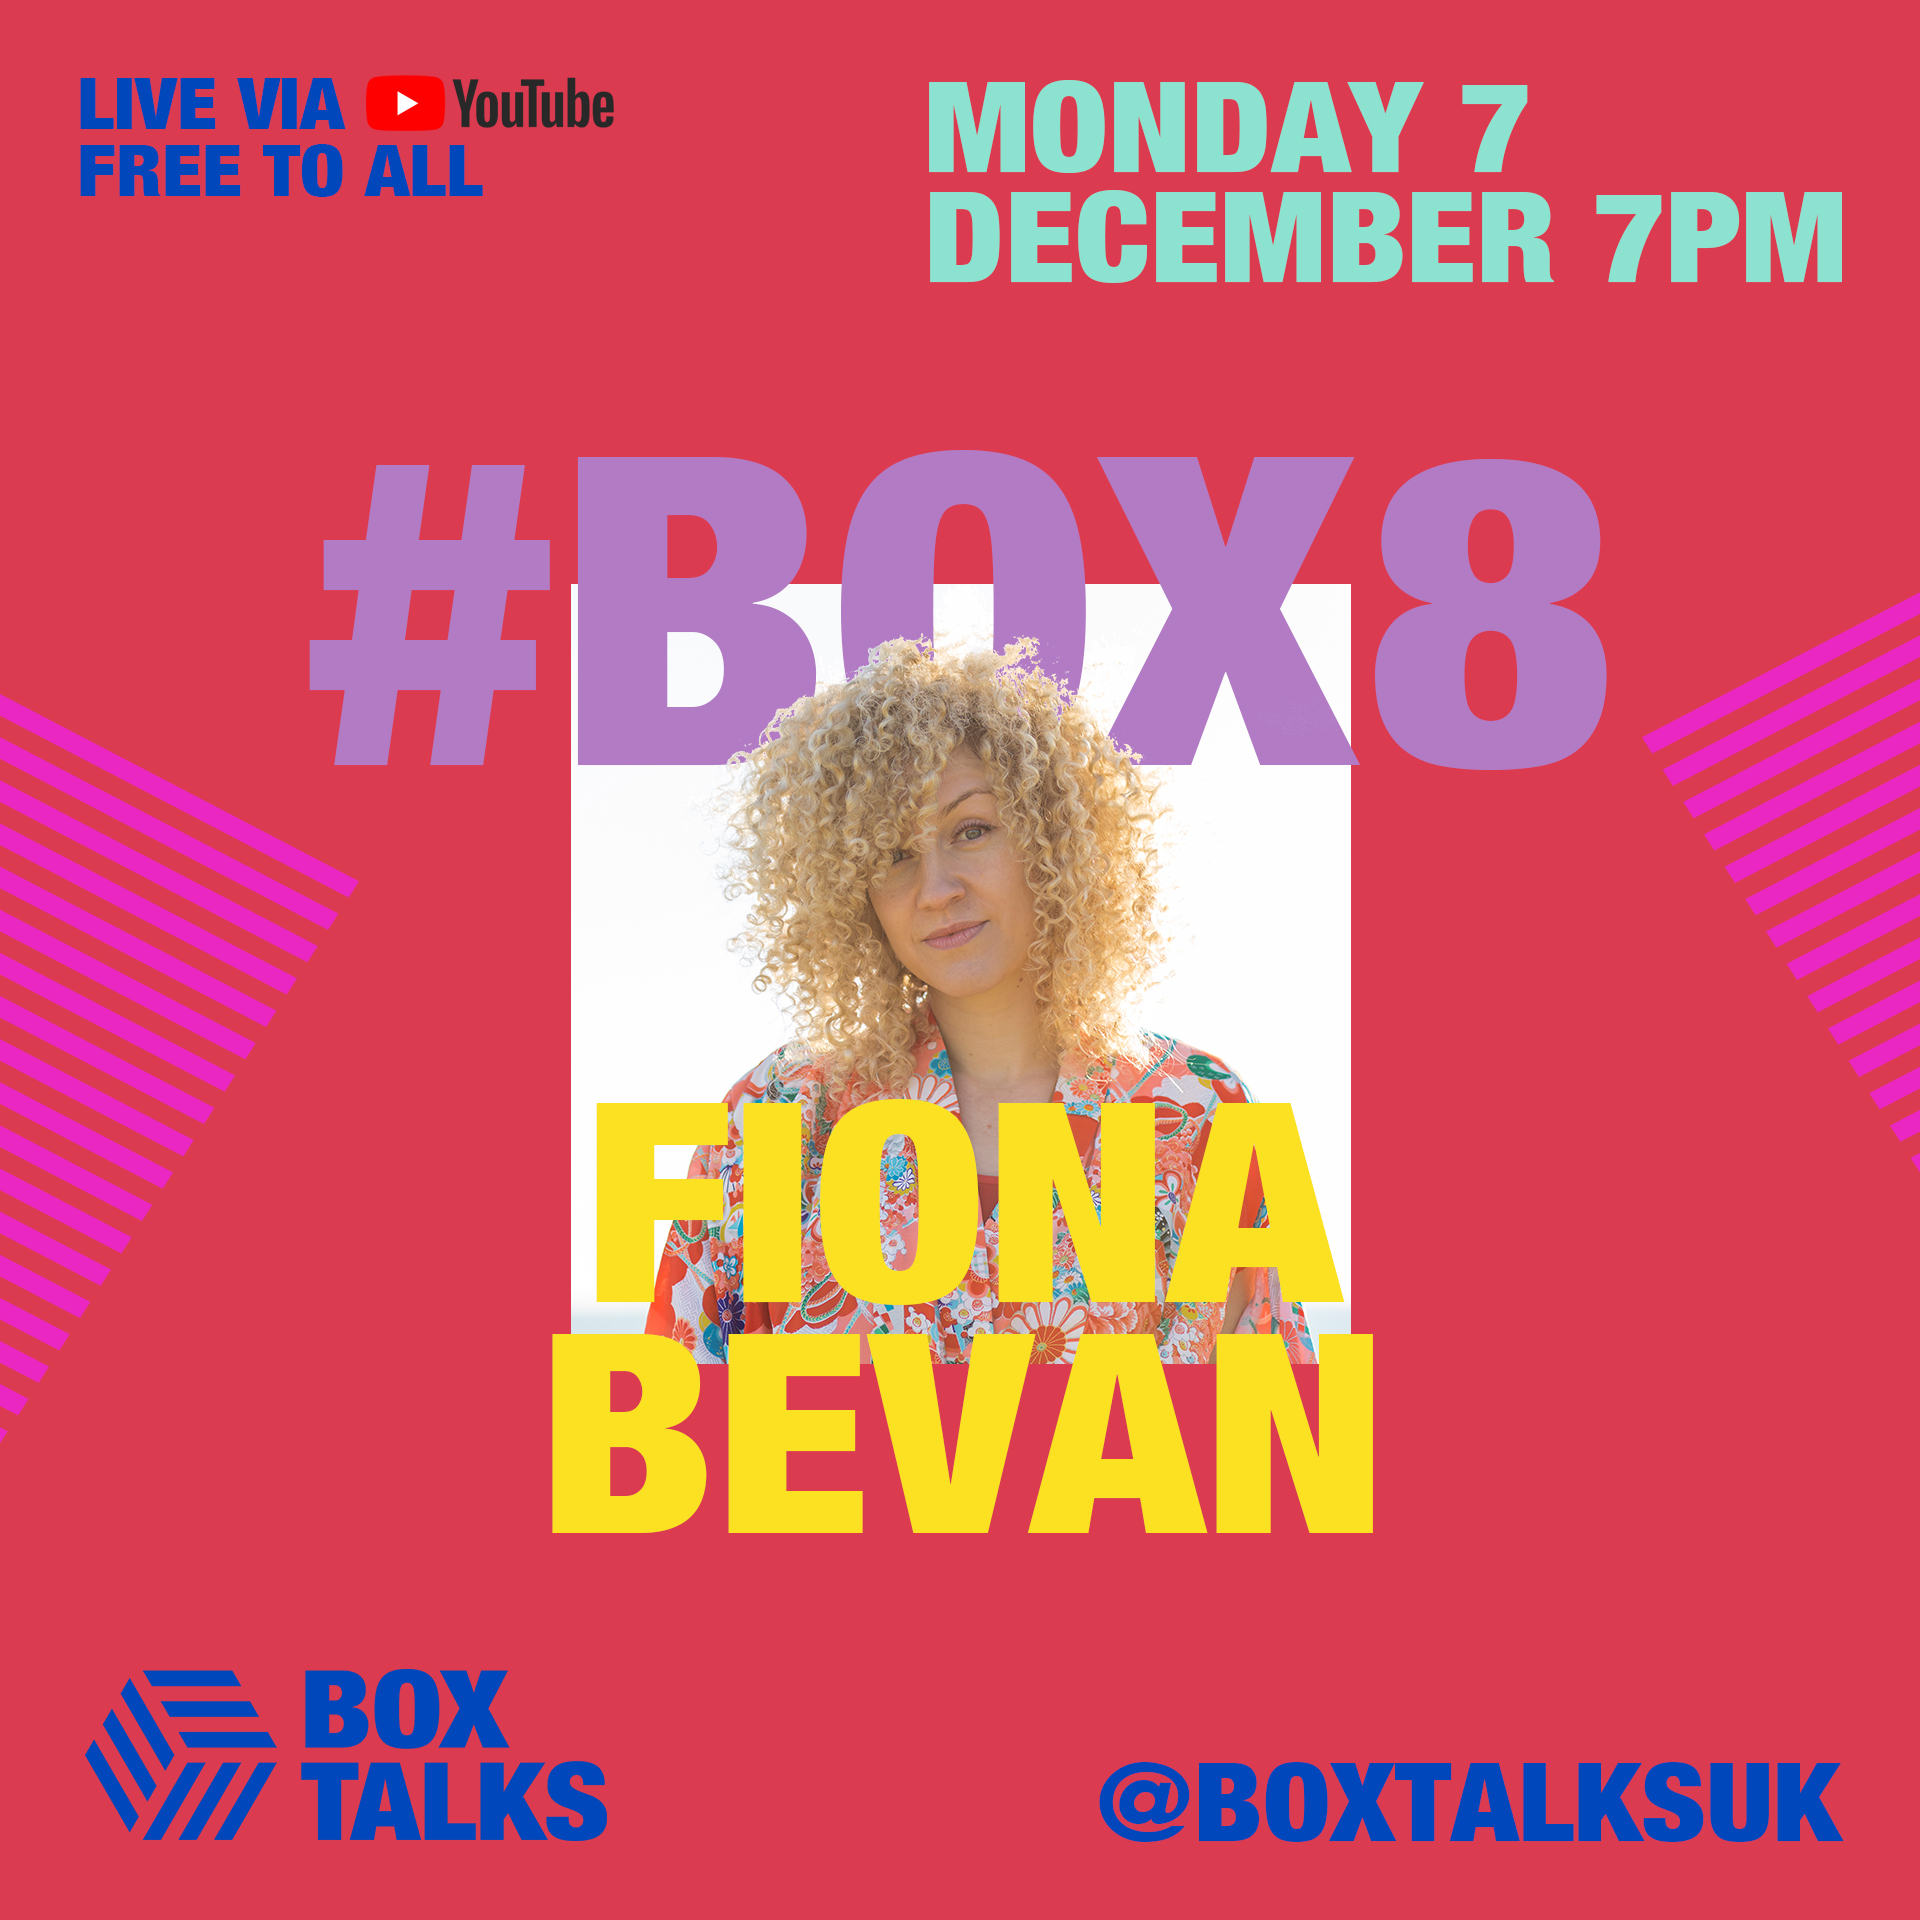 BOX TALKS #8 - Fiona Bevan, multi-platinum selling songwriter for One Direction, Shawn Mendes and others